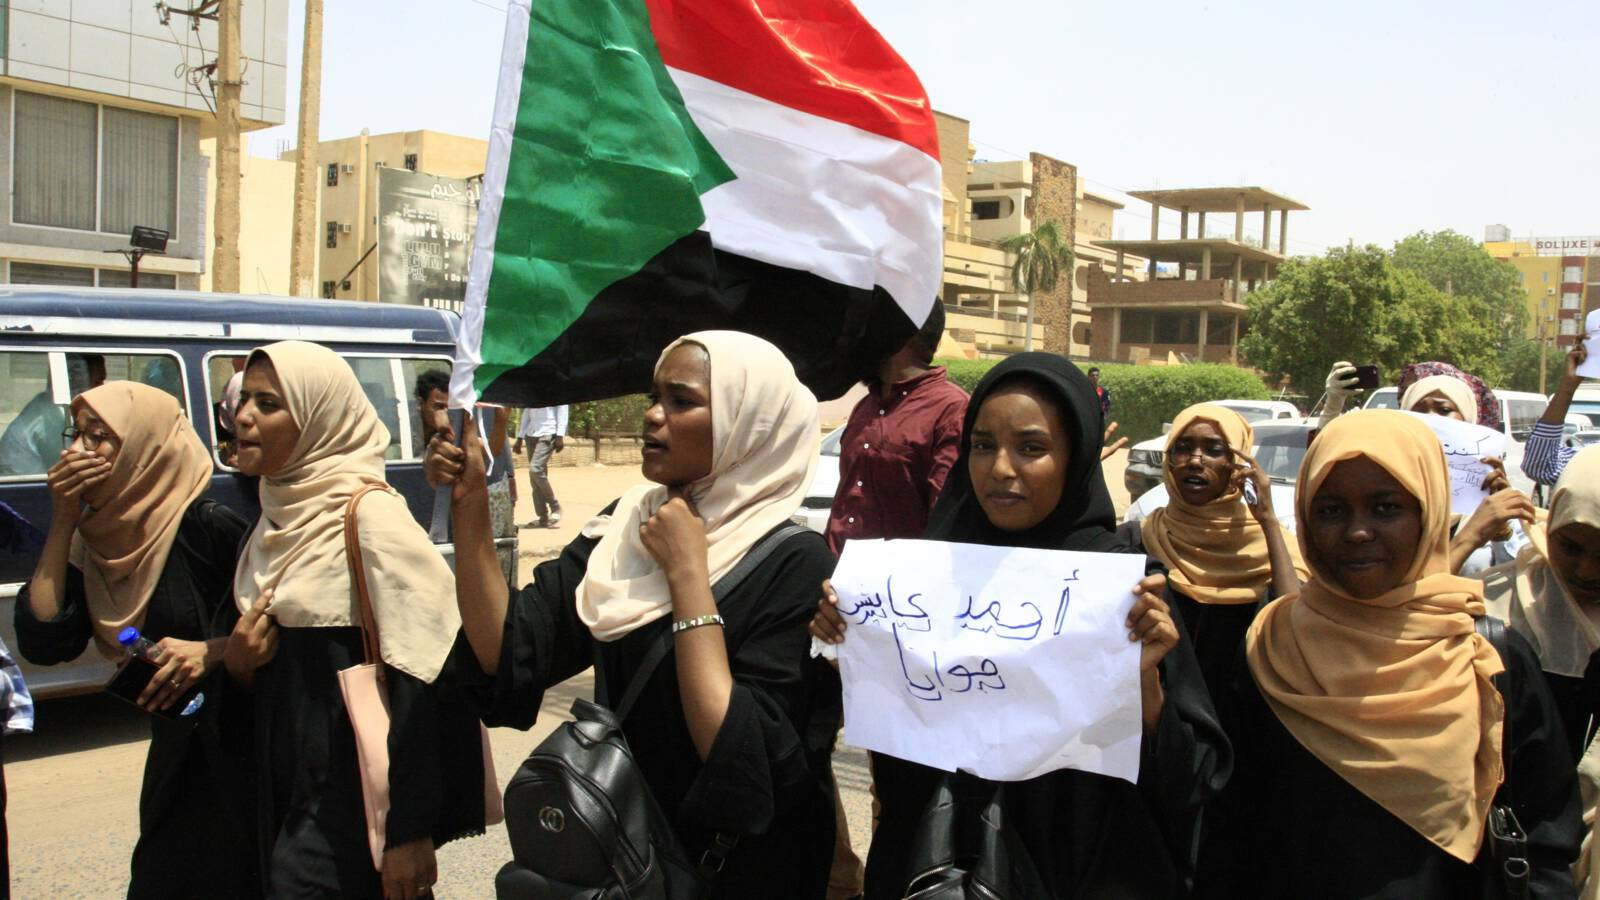 Sudanese schoolgirls demonstrate in Khartoum